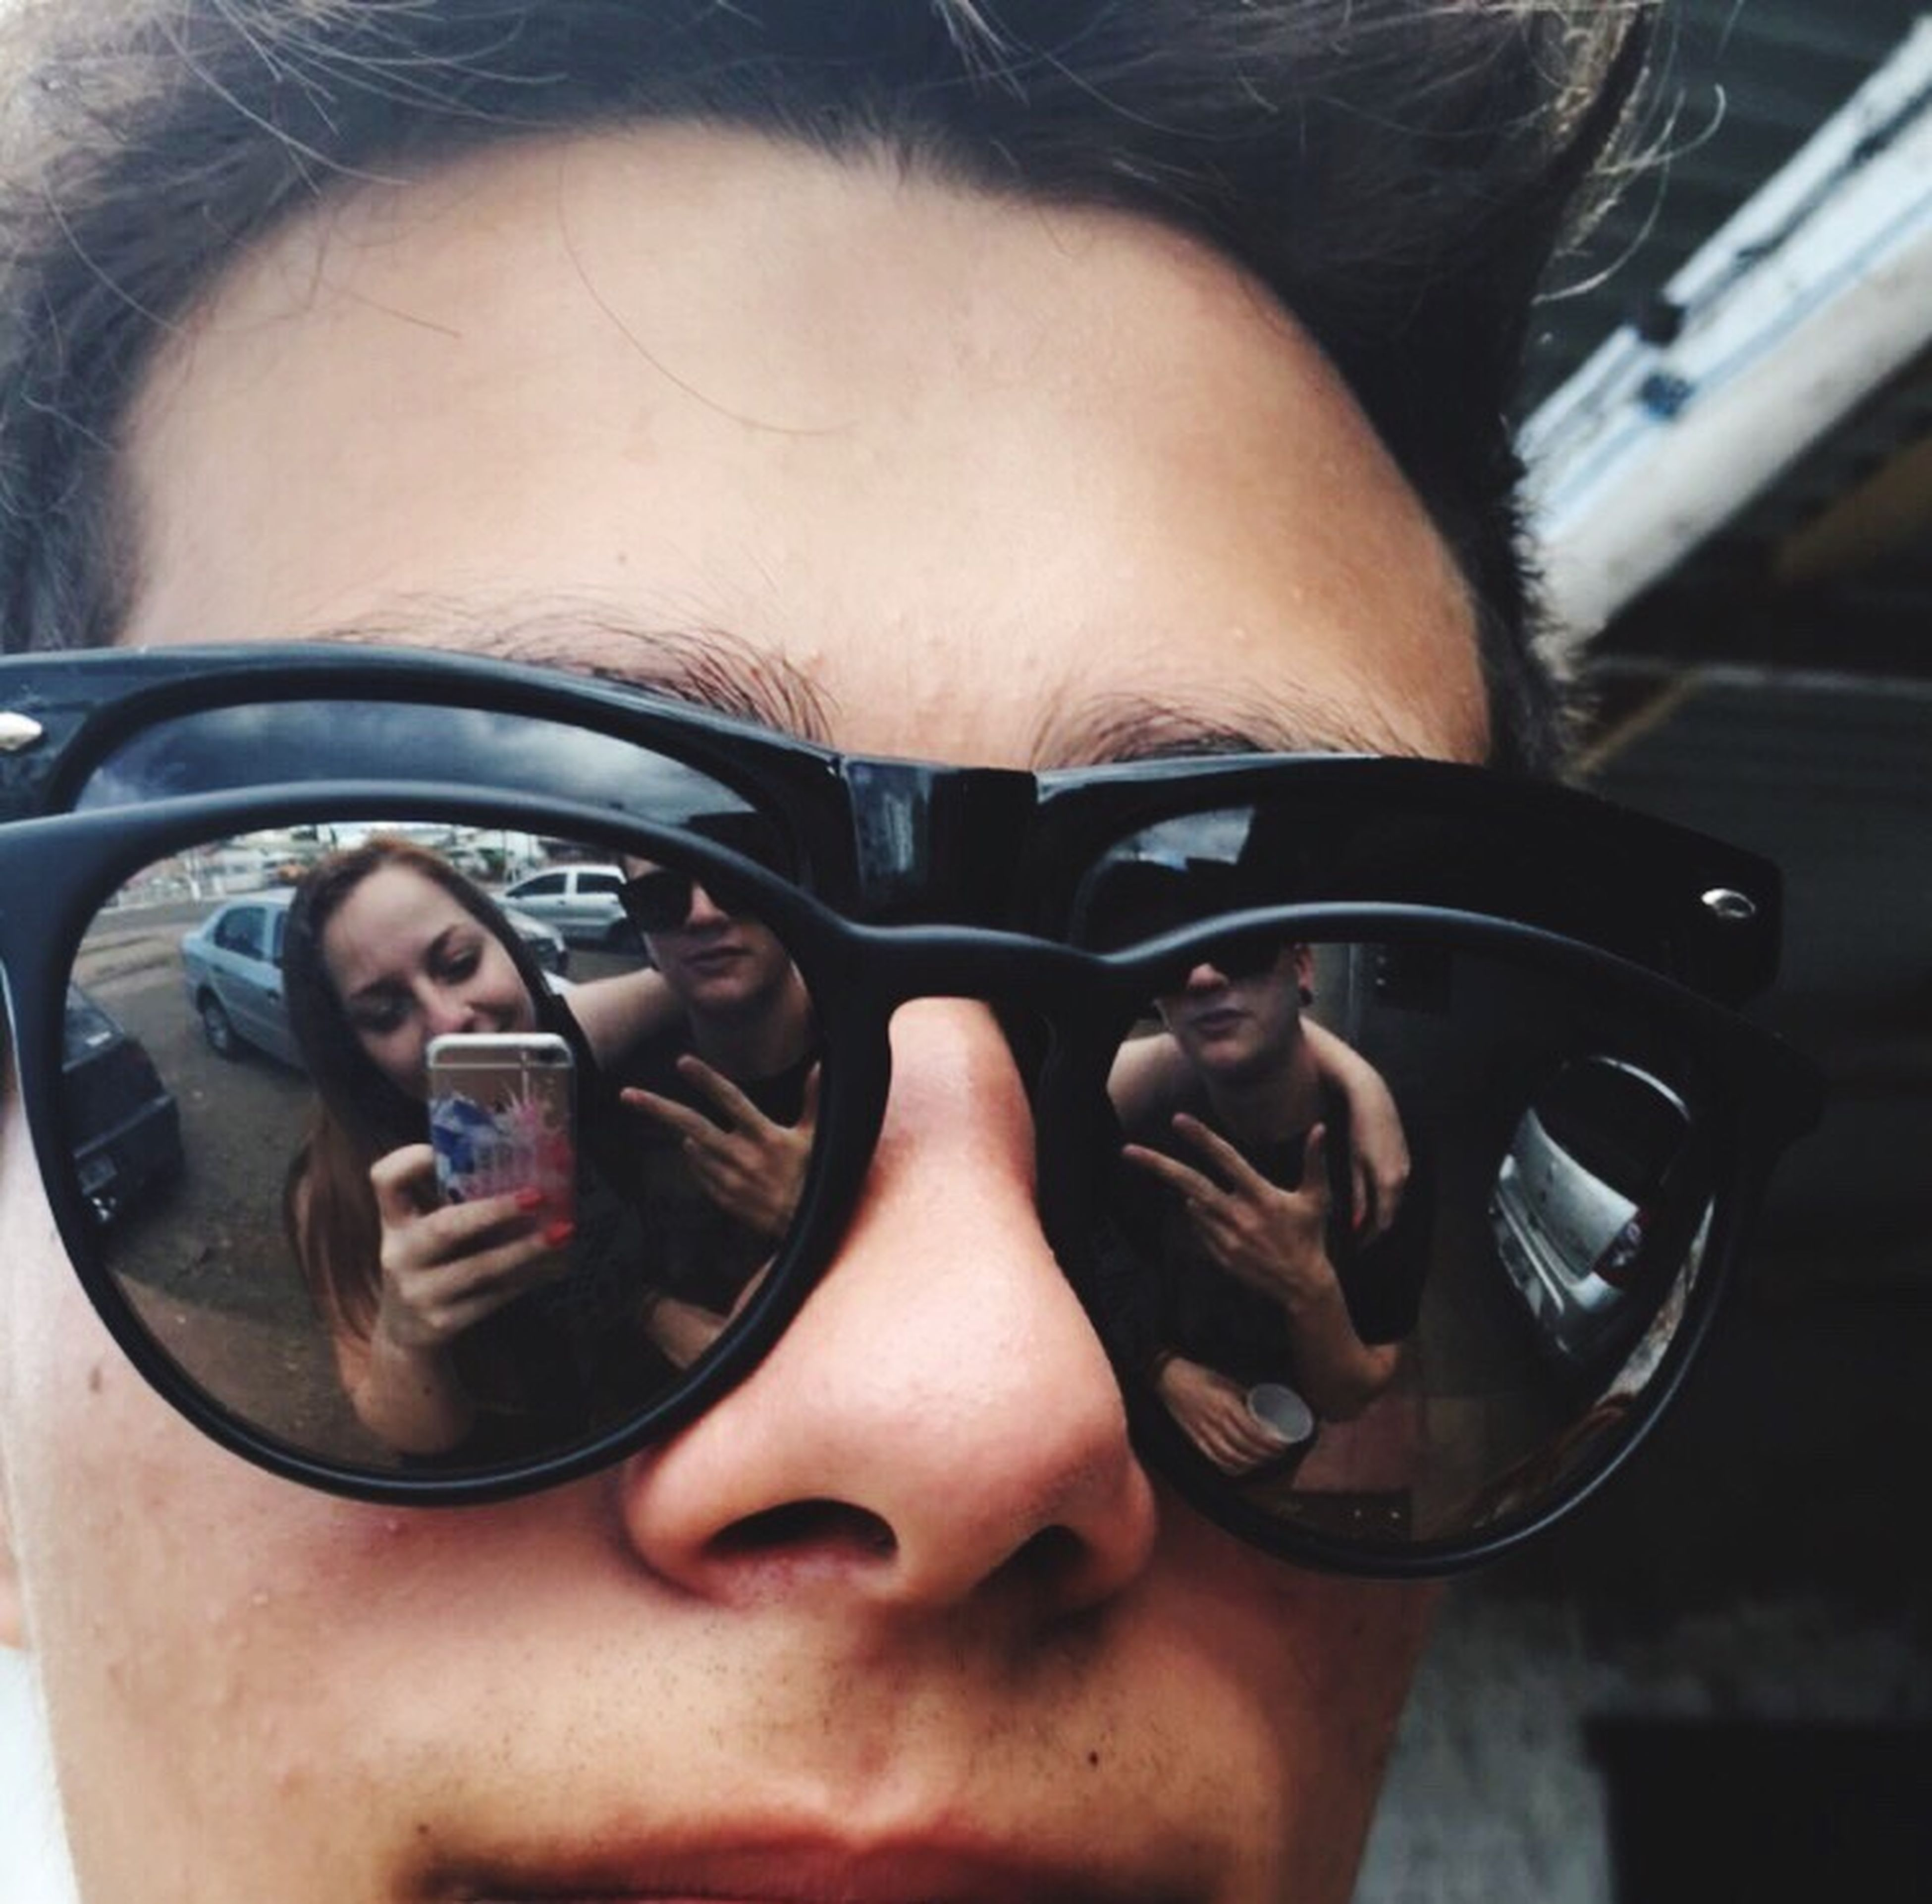 lifestyles, holding, person, leisure activity, close-up, part of, indoors, headshot, sunglasses, cropped, car, young adult, food and drink, front view, men, focus on foreground